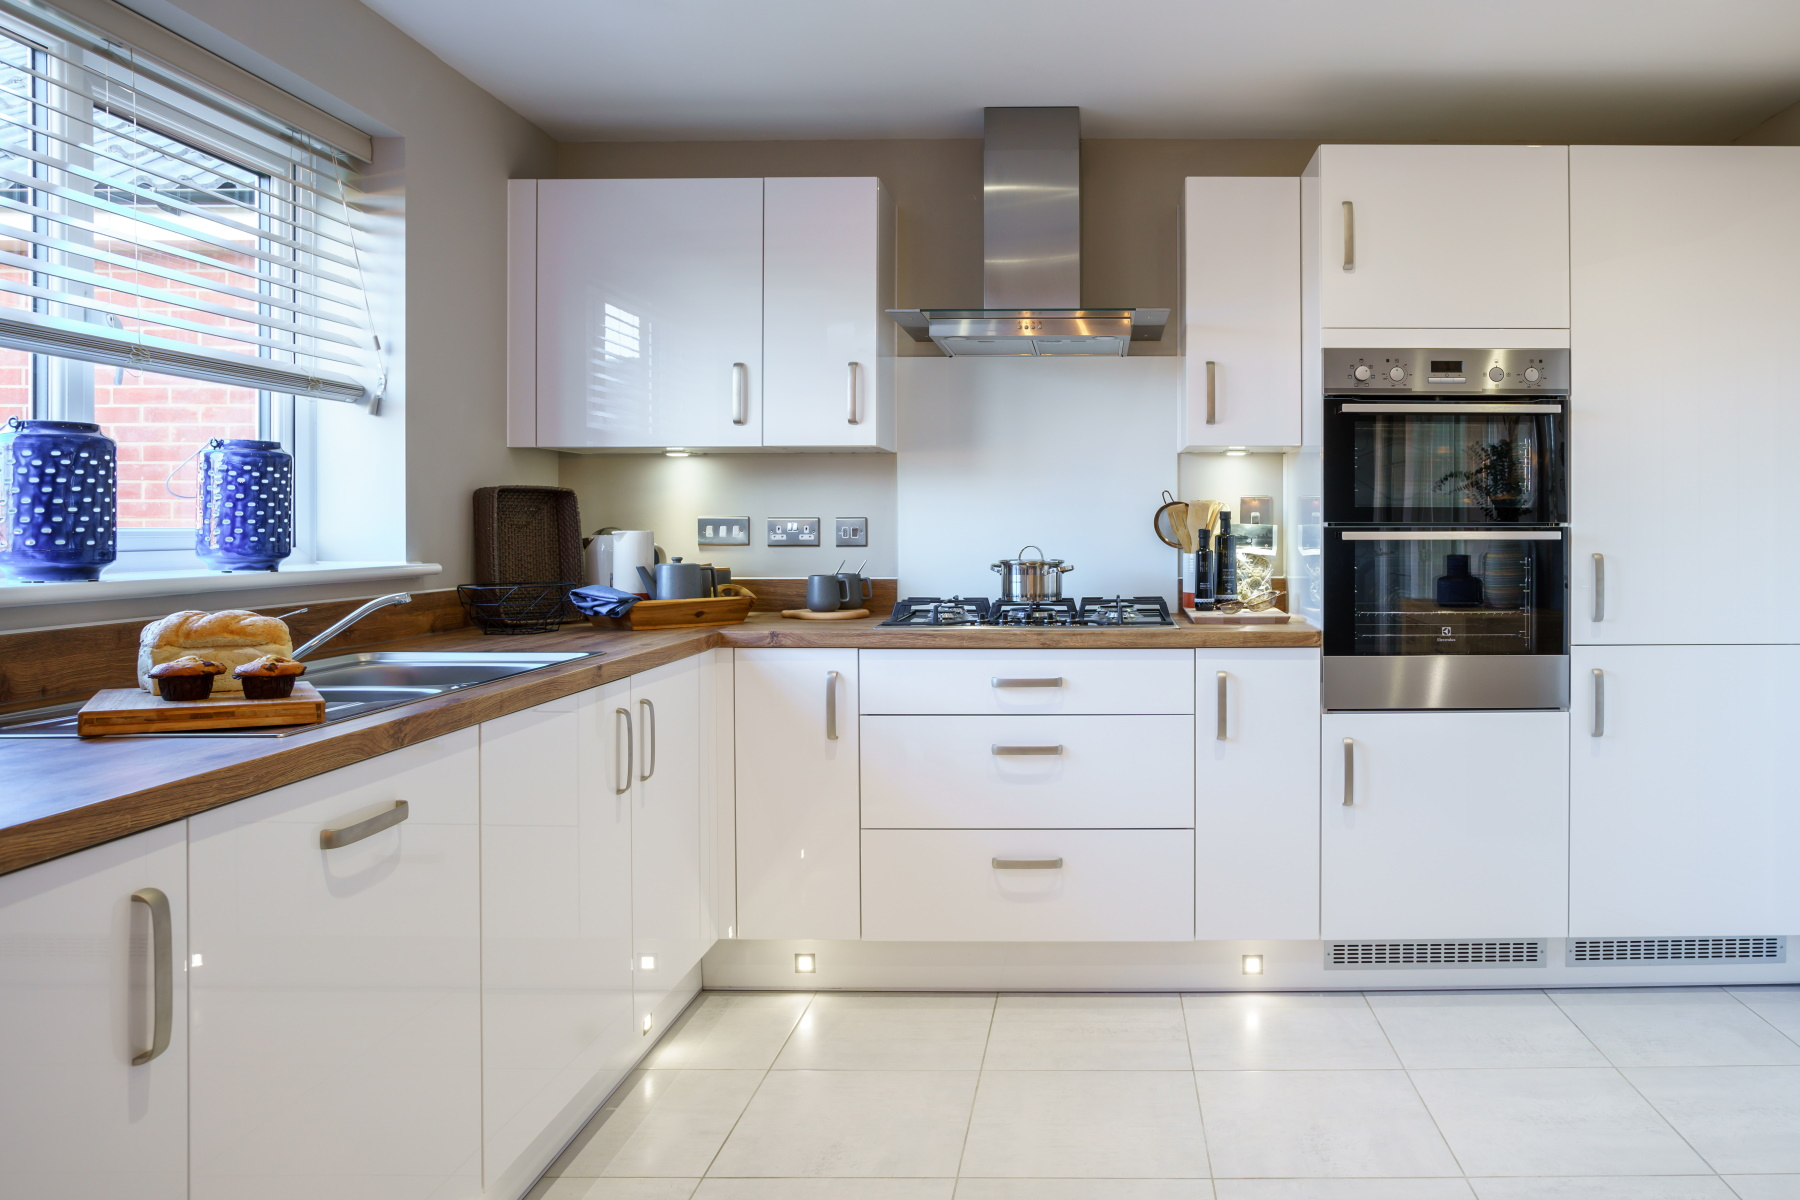 TW Exeter - Mayfield Gardens - Midford example kitchen